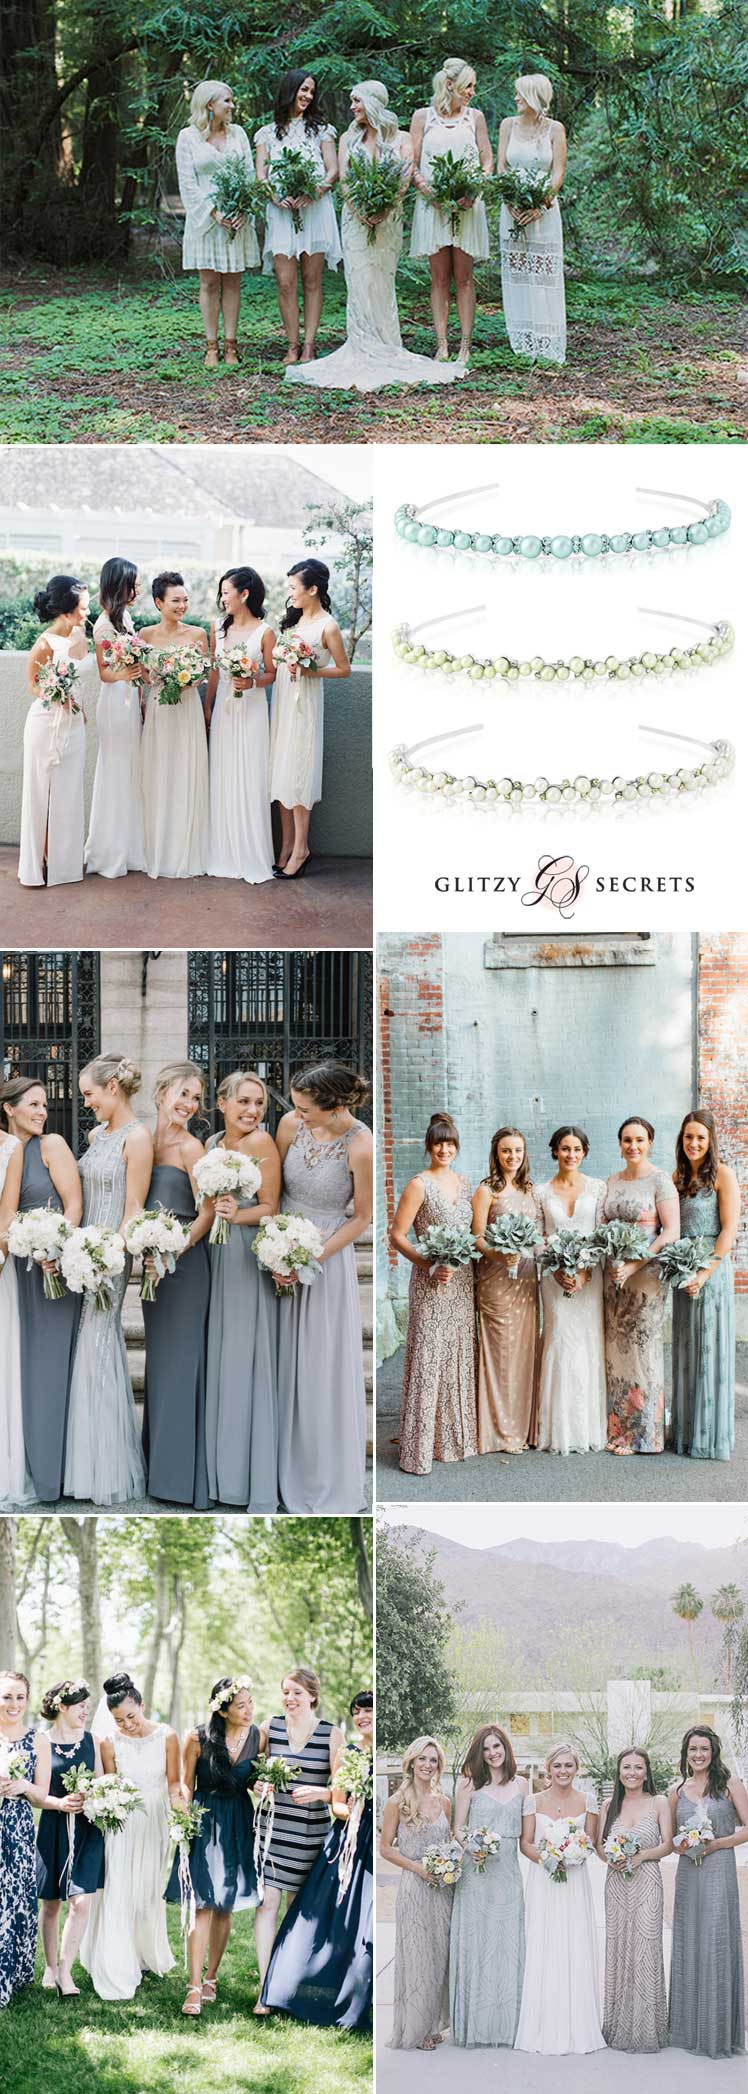 mismatched dresses for your bridesmaids